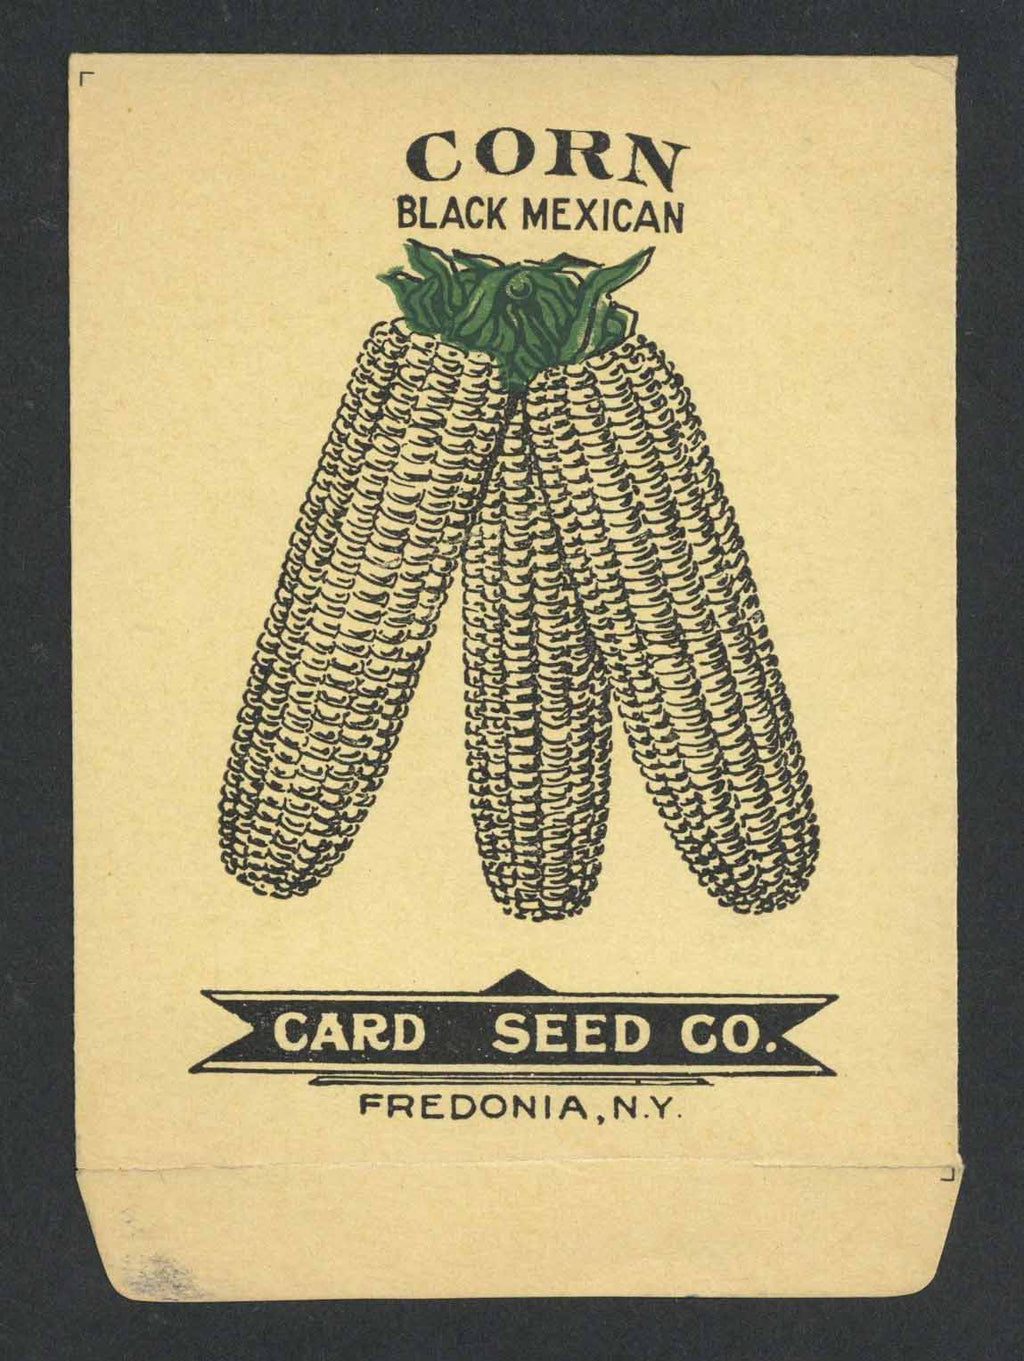 Corn Antique Card Seed Co. Seed Packet, Black Mexican